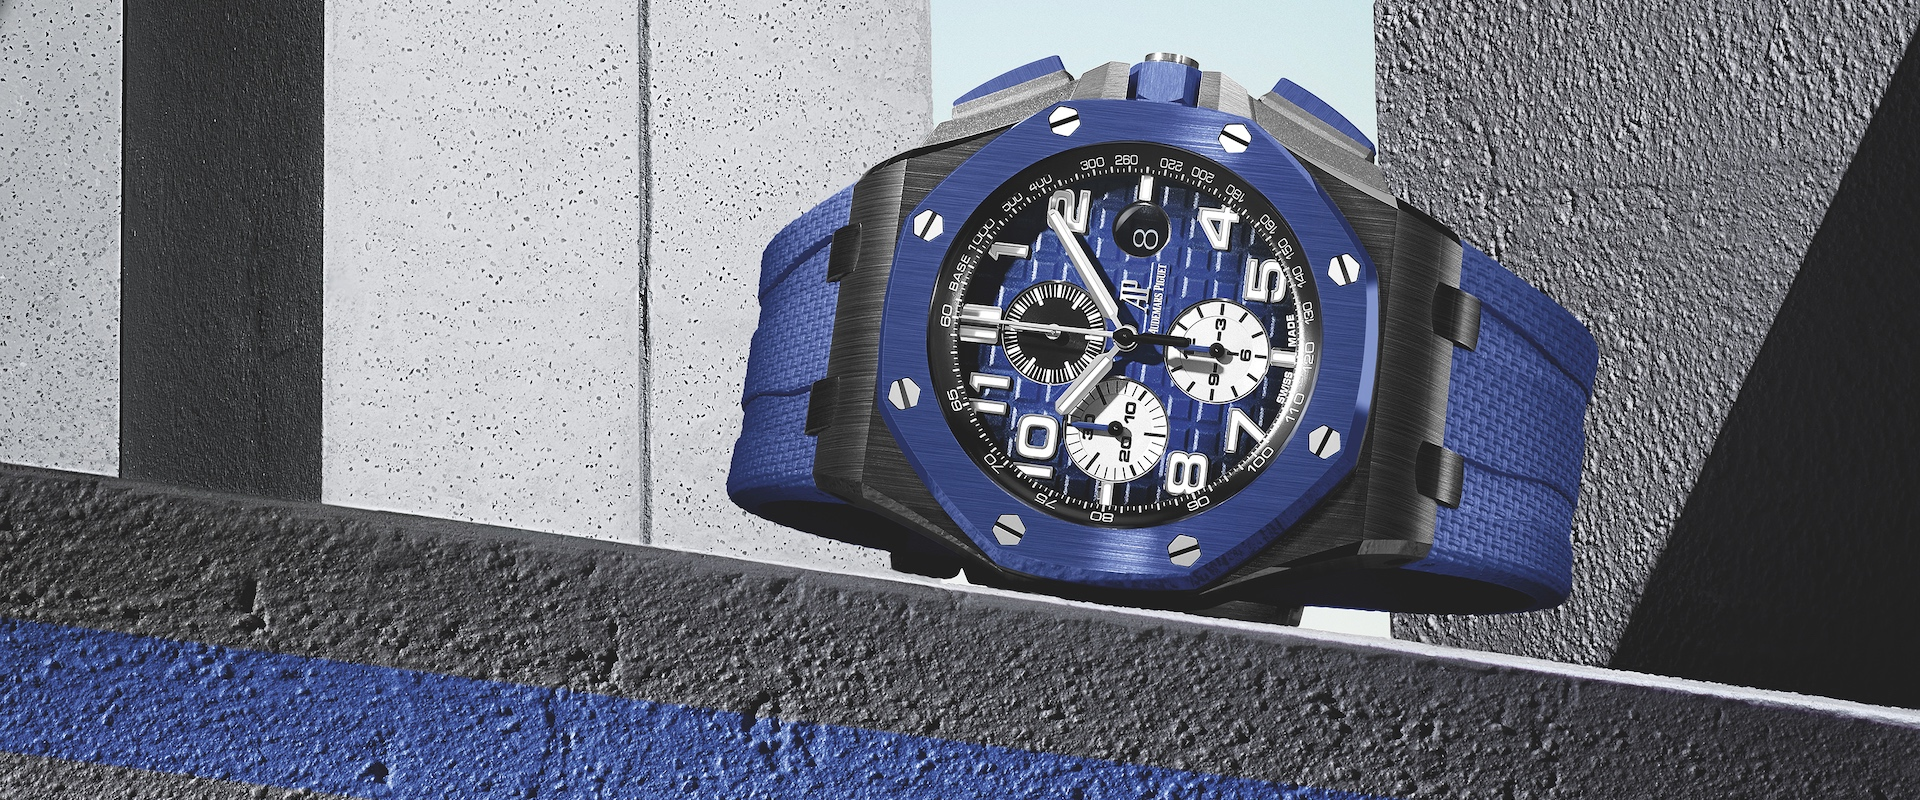 Audemars Piguet Royal Oak Offshore Ref. 26405